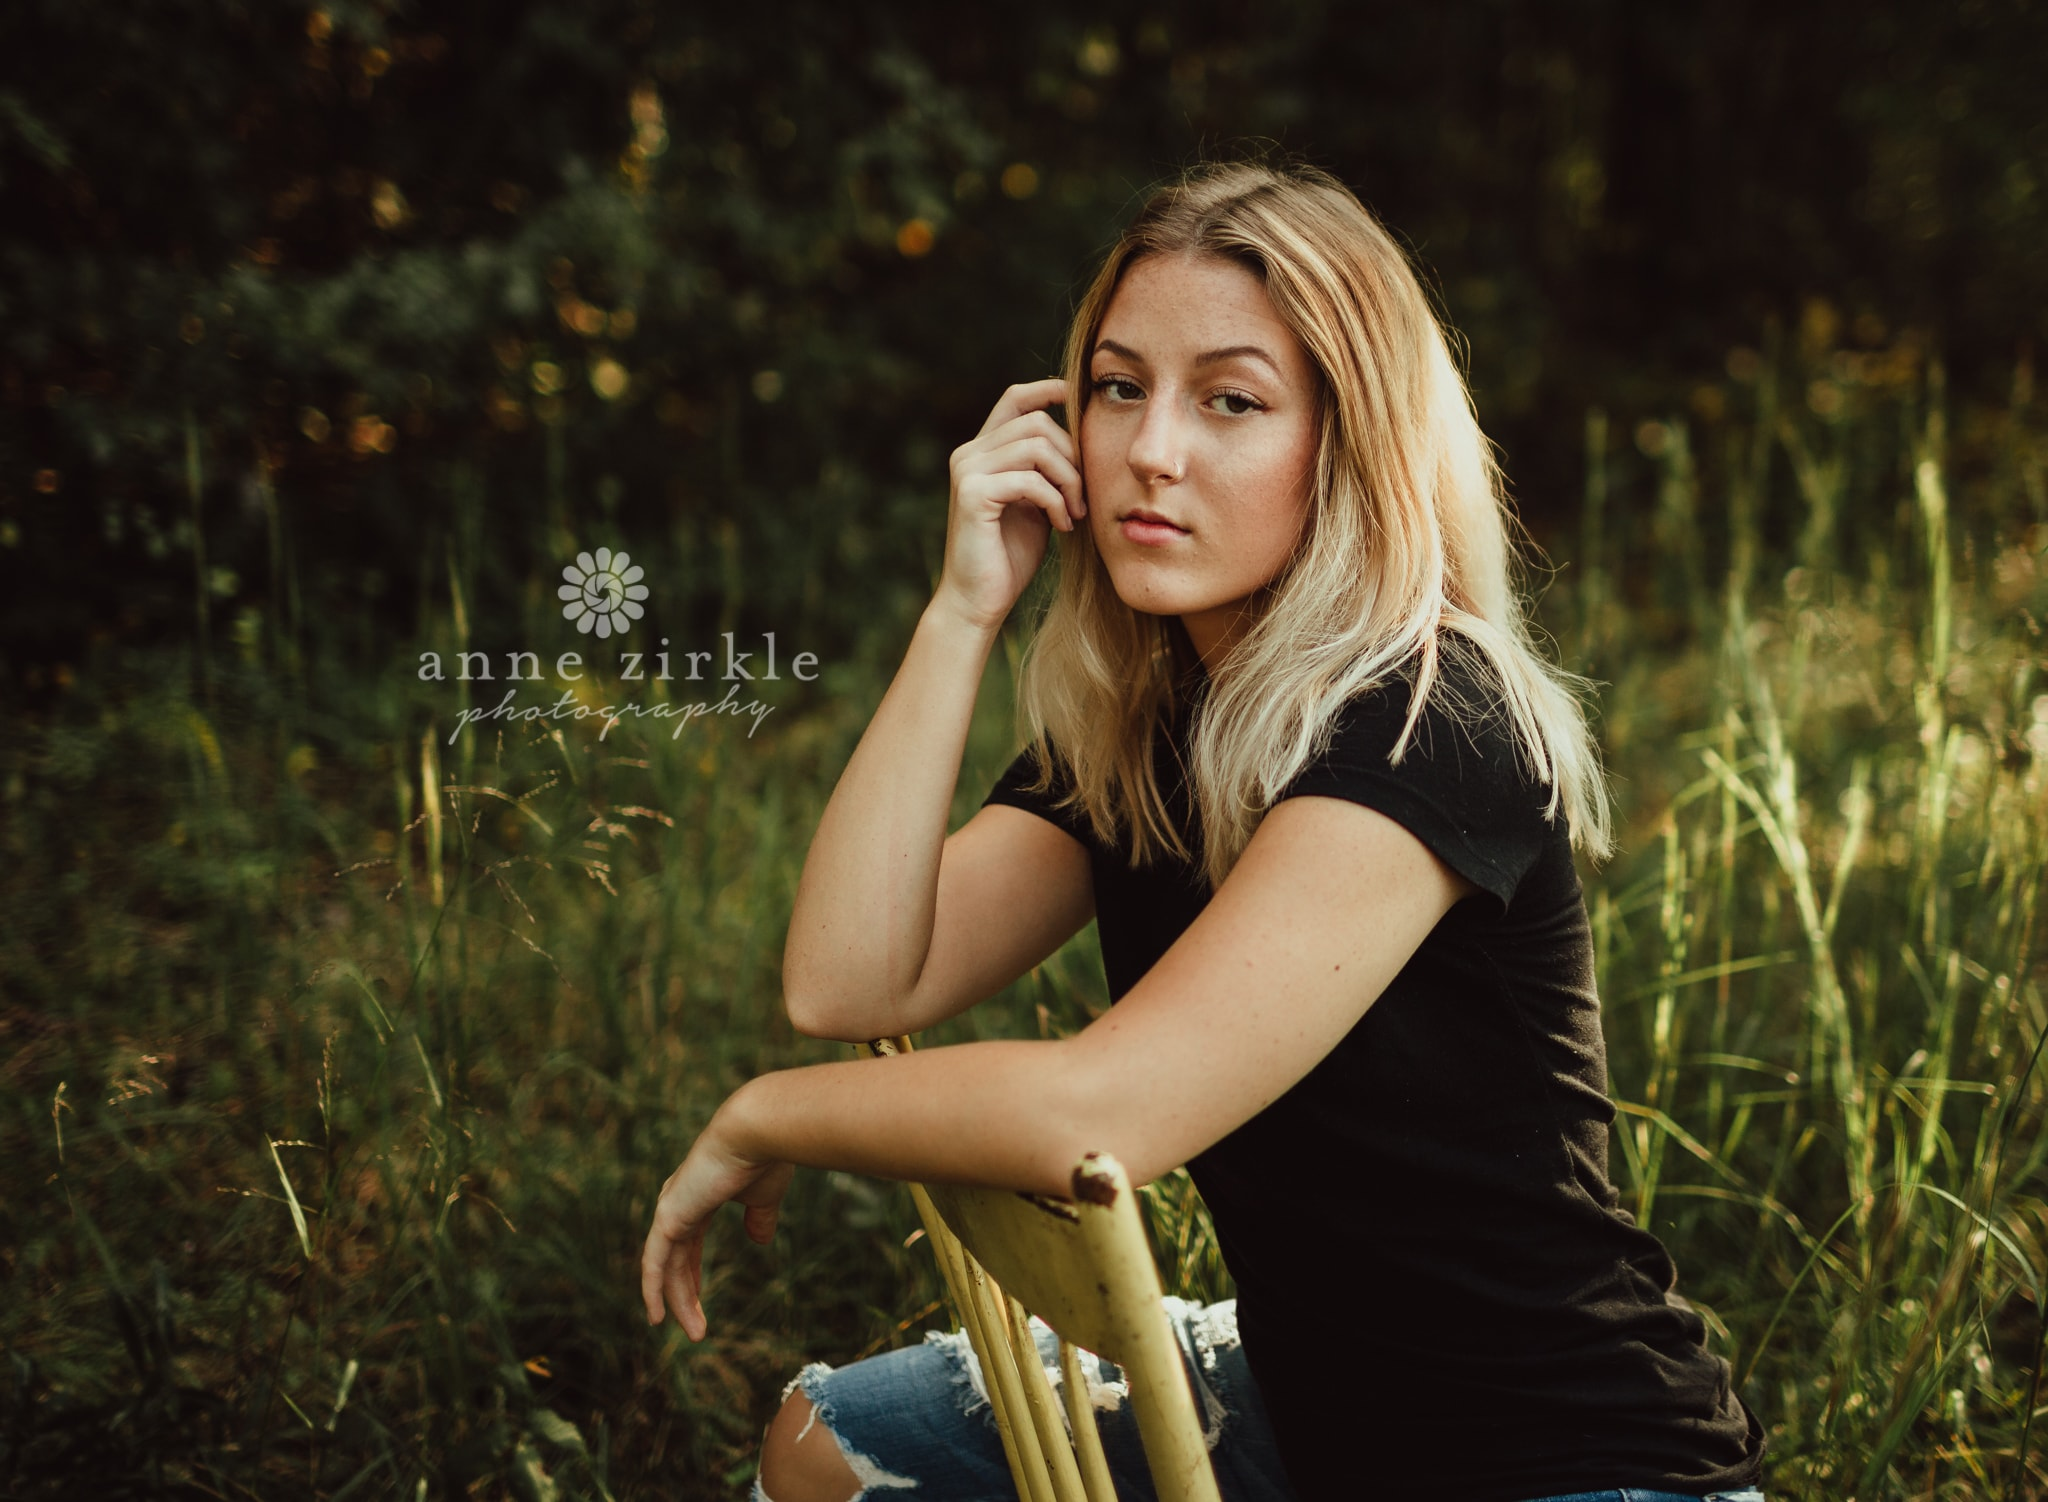 senior girl sitting in woods on painted chair #mooresville #northcarolina #davidson #lakenorman #southiredell #pinelakeprep #highschool #highschoolsenior #highschoolseniors #seniors